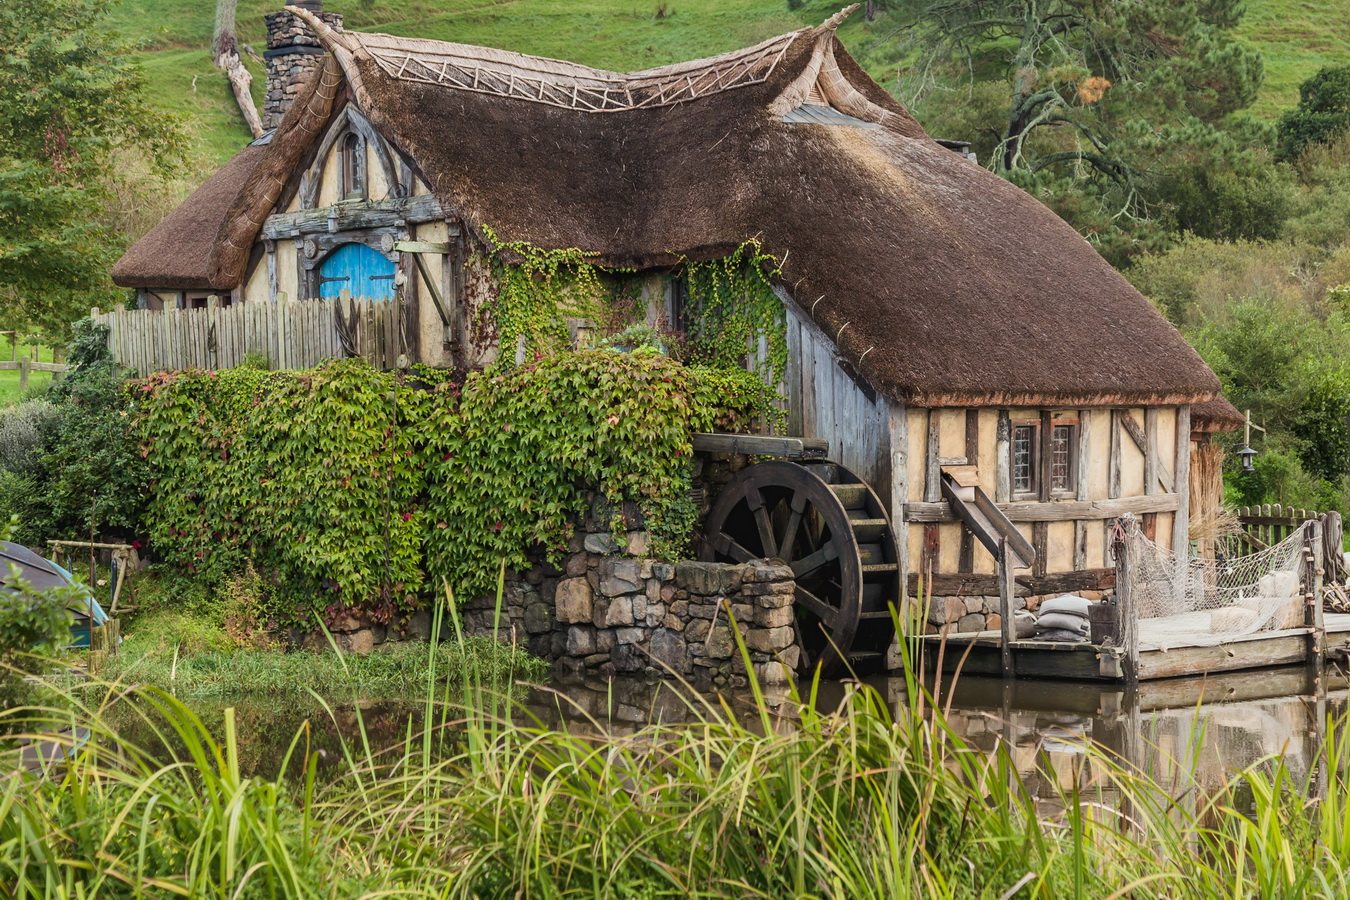 mill,The Hobbiton, The Shire,Хоббитшир, Удел, Хоббитания, Заселье, Край,Matamata, North Island ,New Zealand